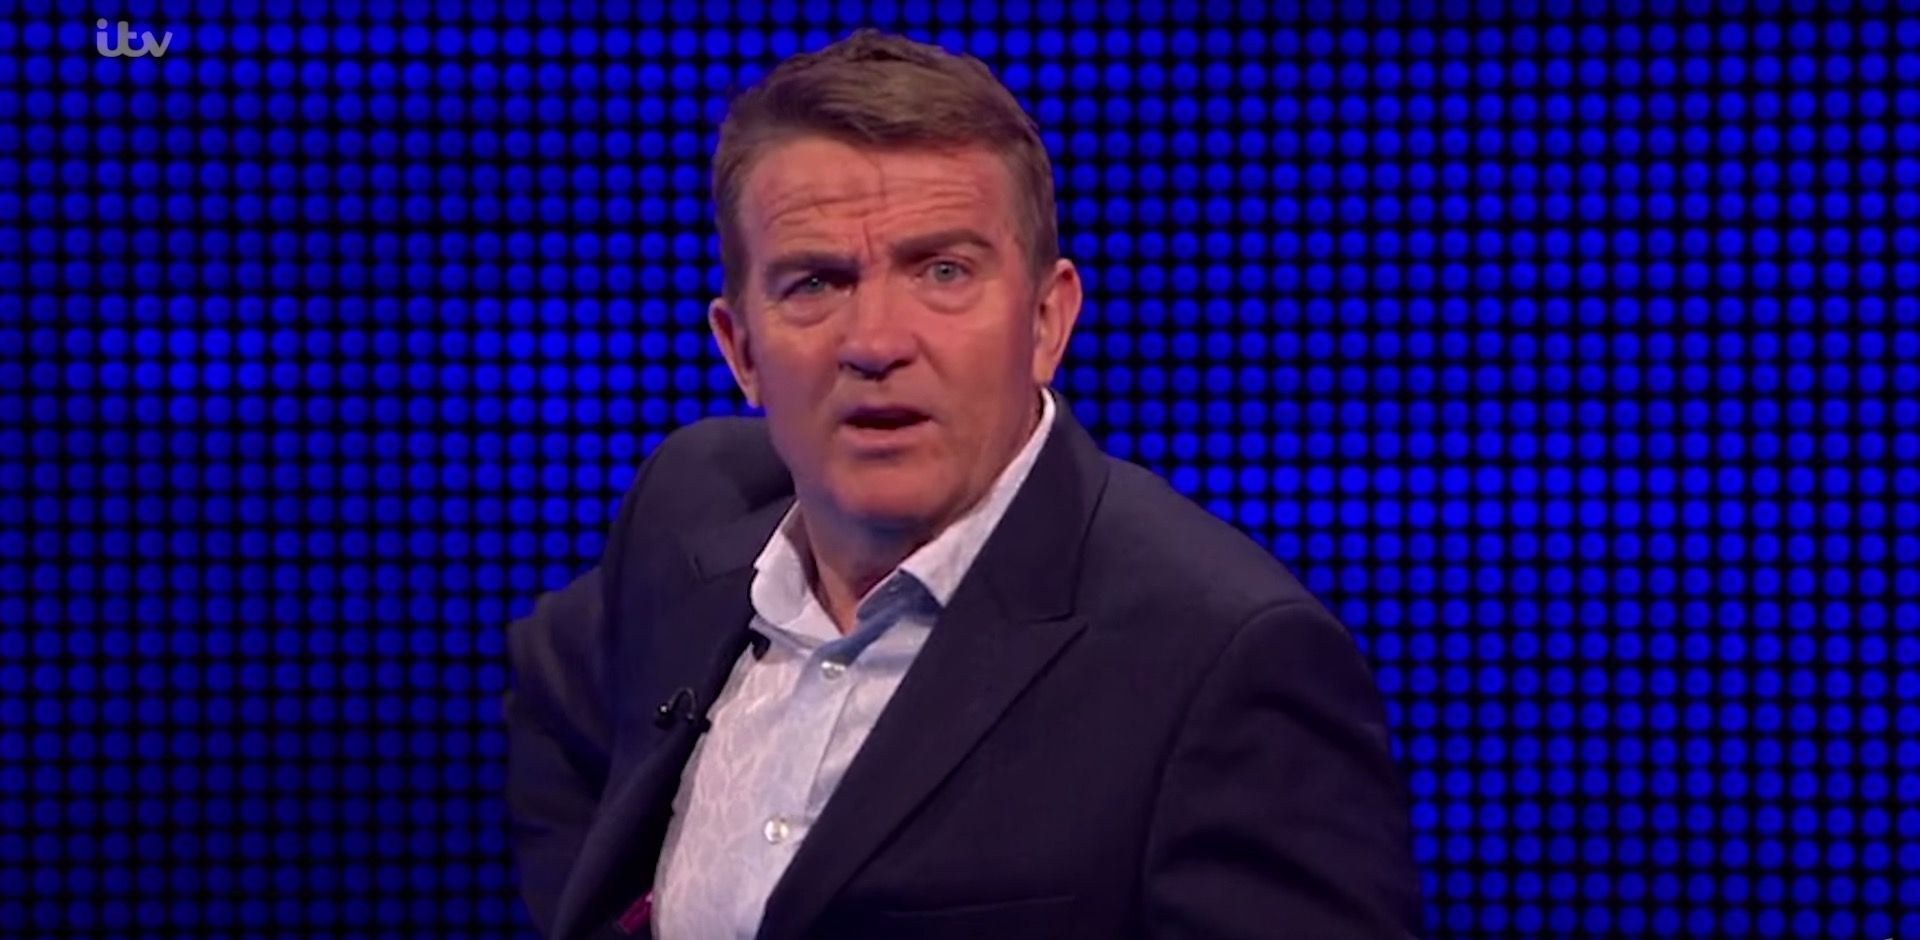 The Chase stars discuss whether the show could work without host Bradley Walsh